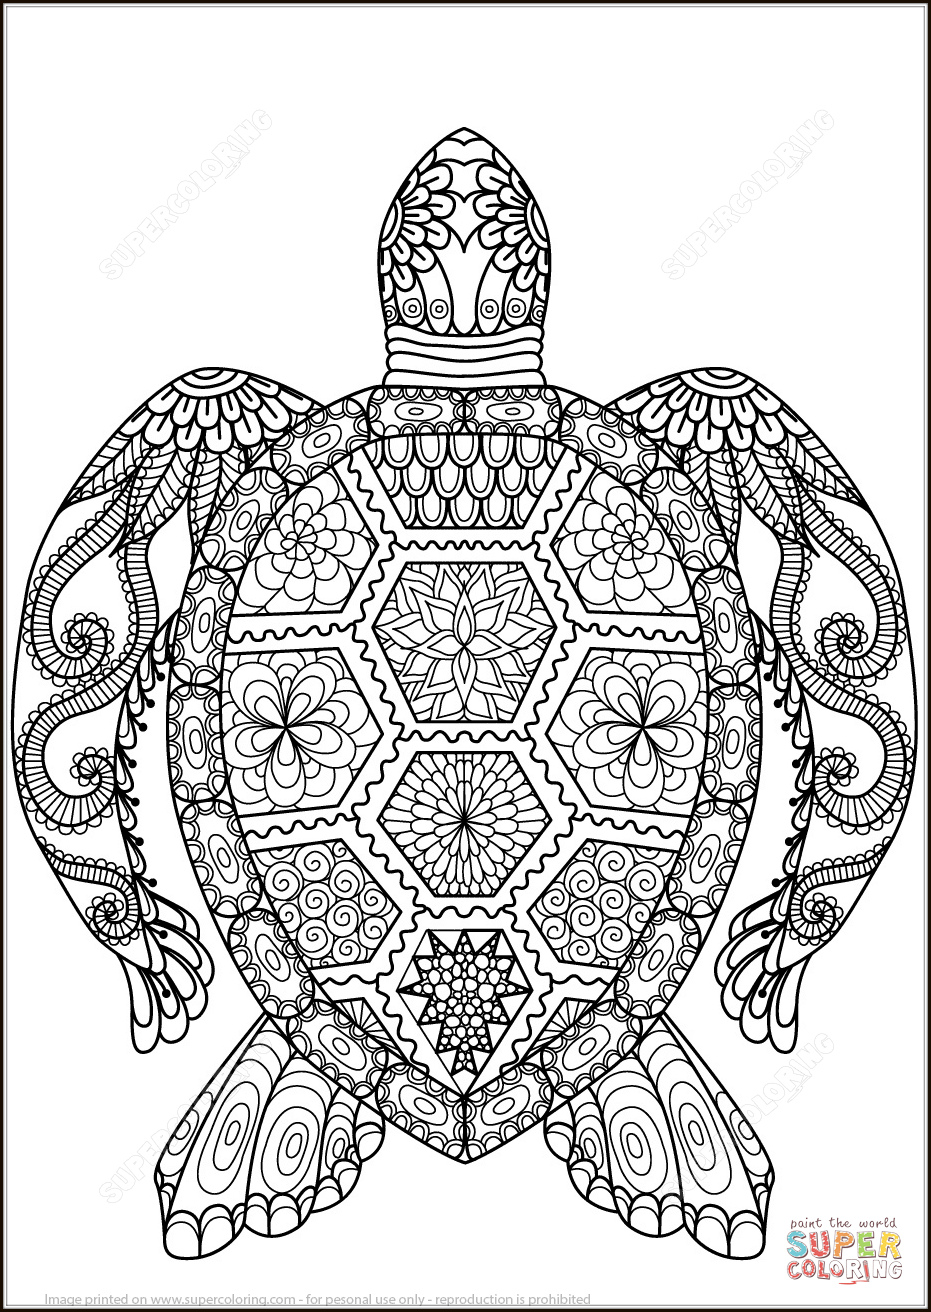 Coloring for adults, Coloring Antistress, тварини, travel, sophisticated coloring antistress,  животные, turtle,animals